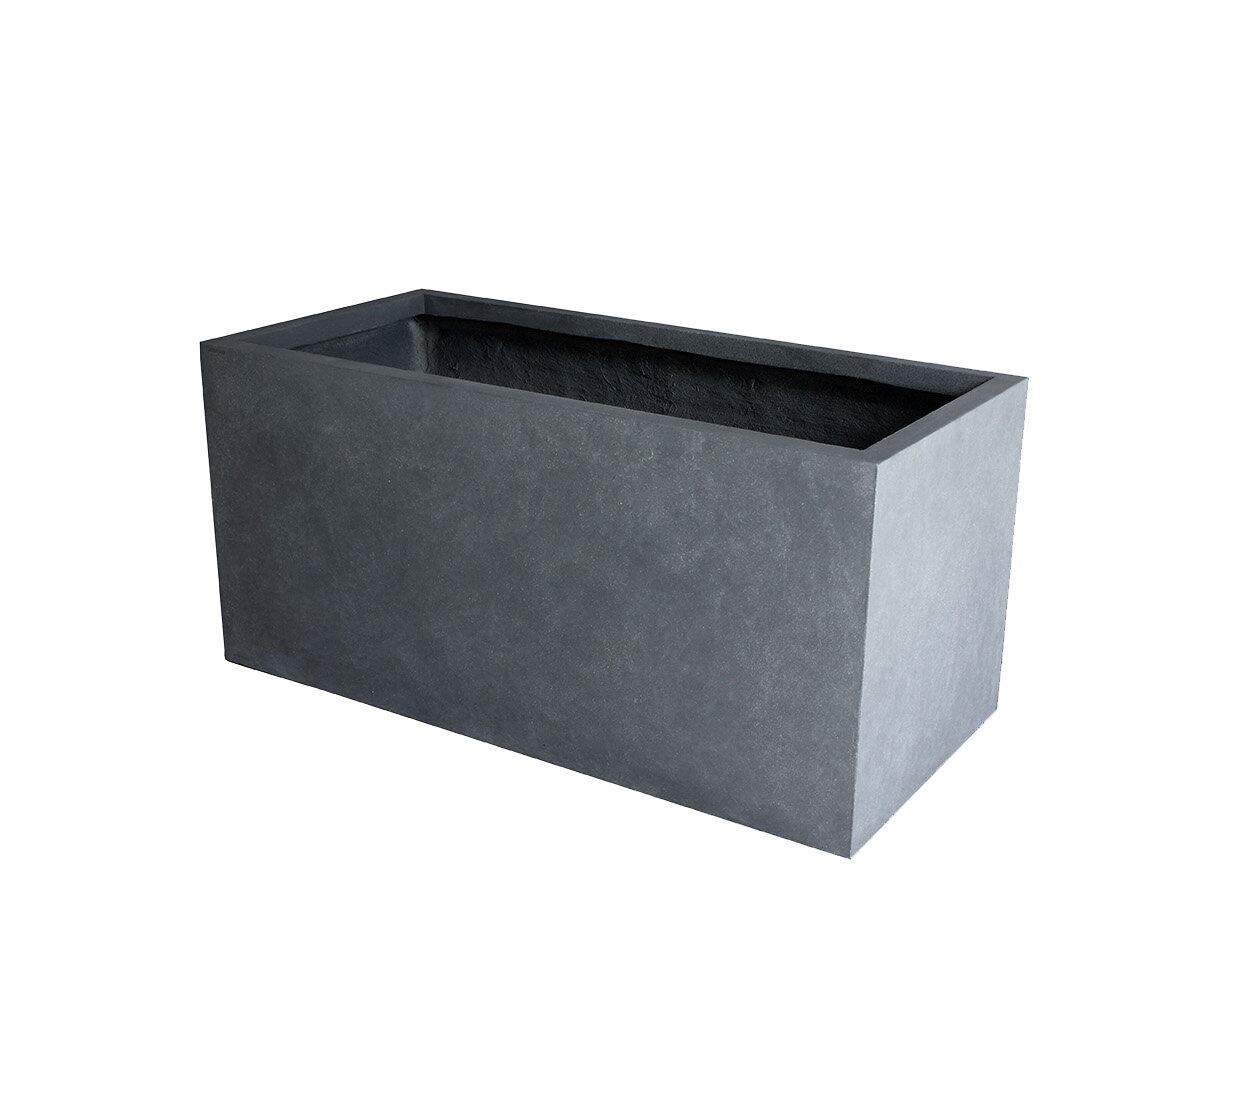 Concrete Rust Resistant Planters You Ll Love In 2021 Wayfair